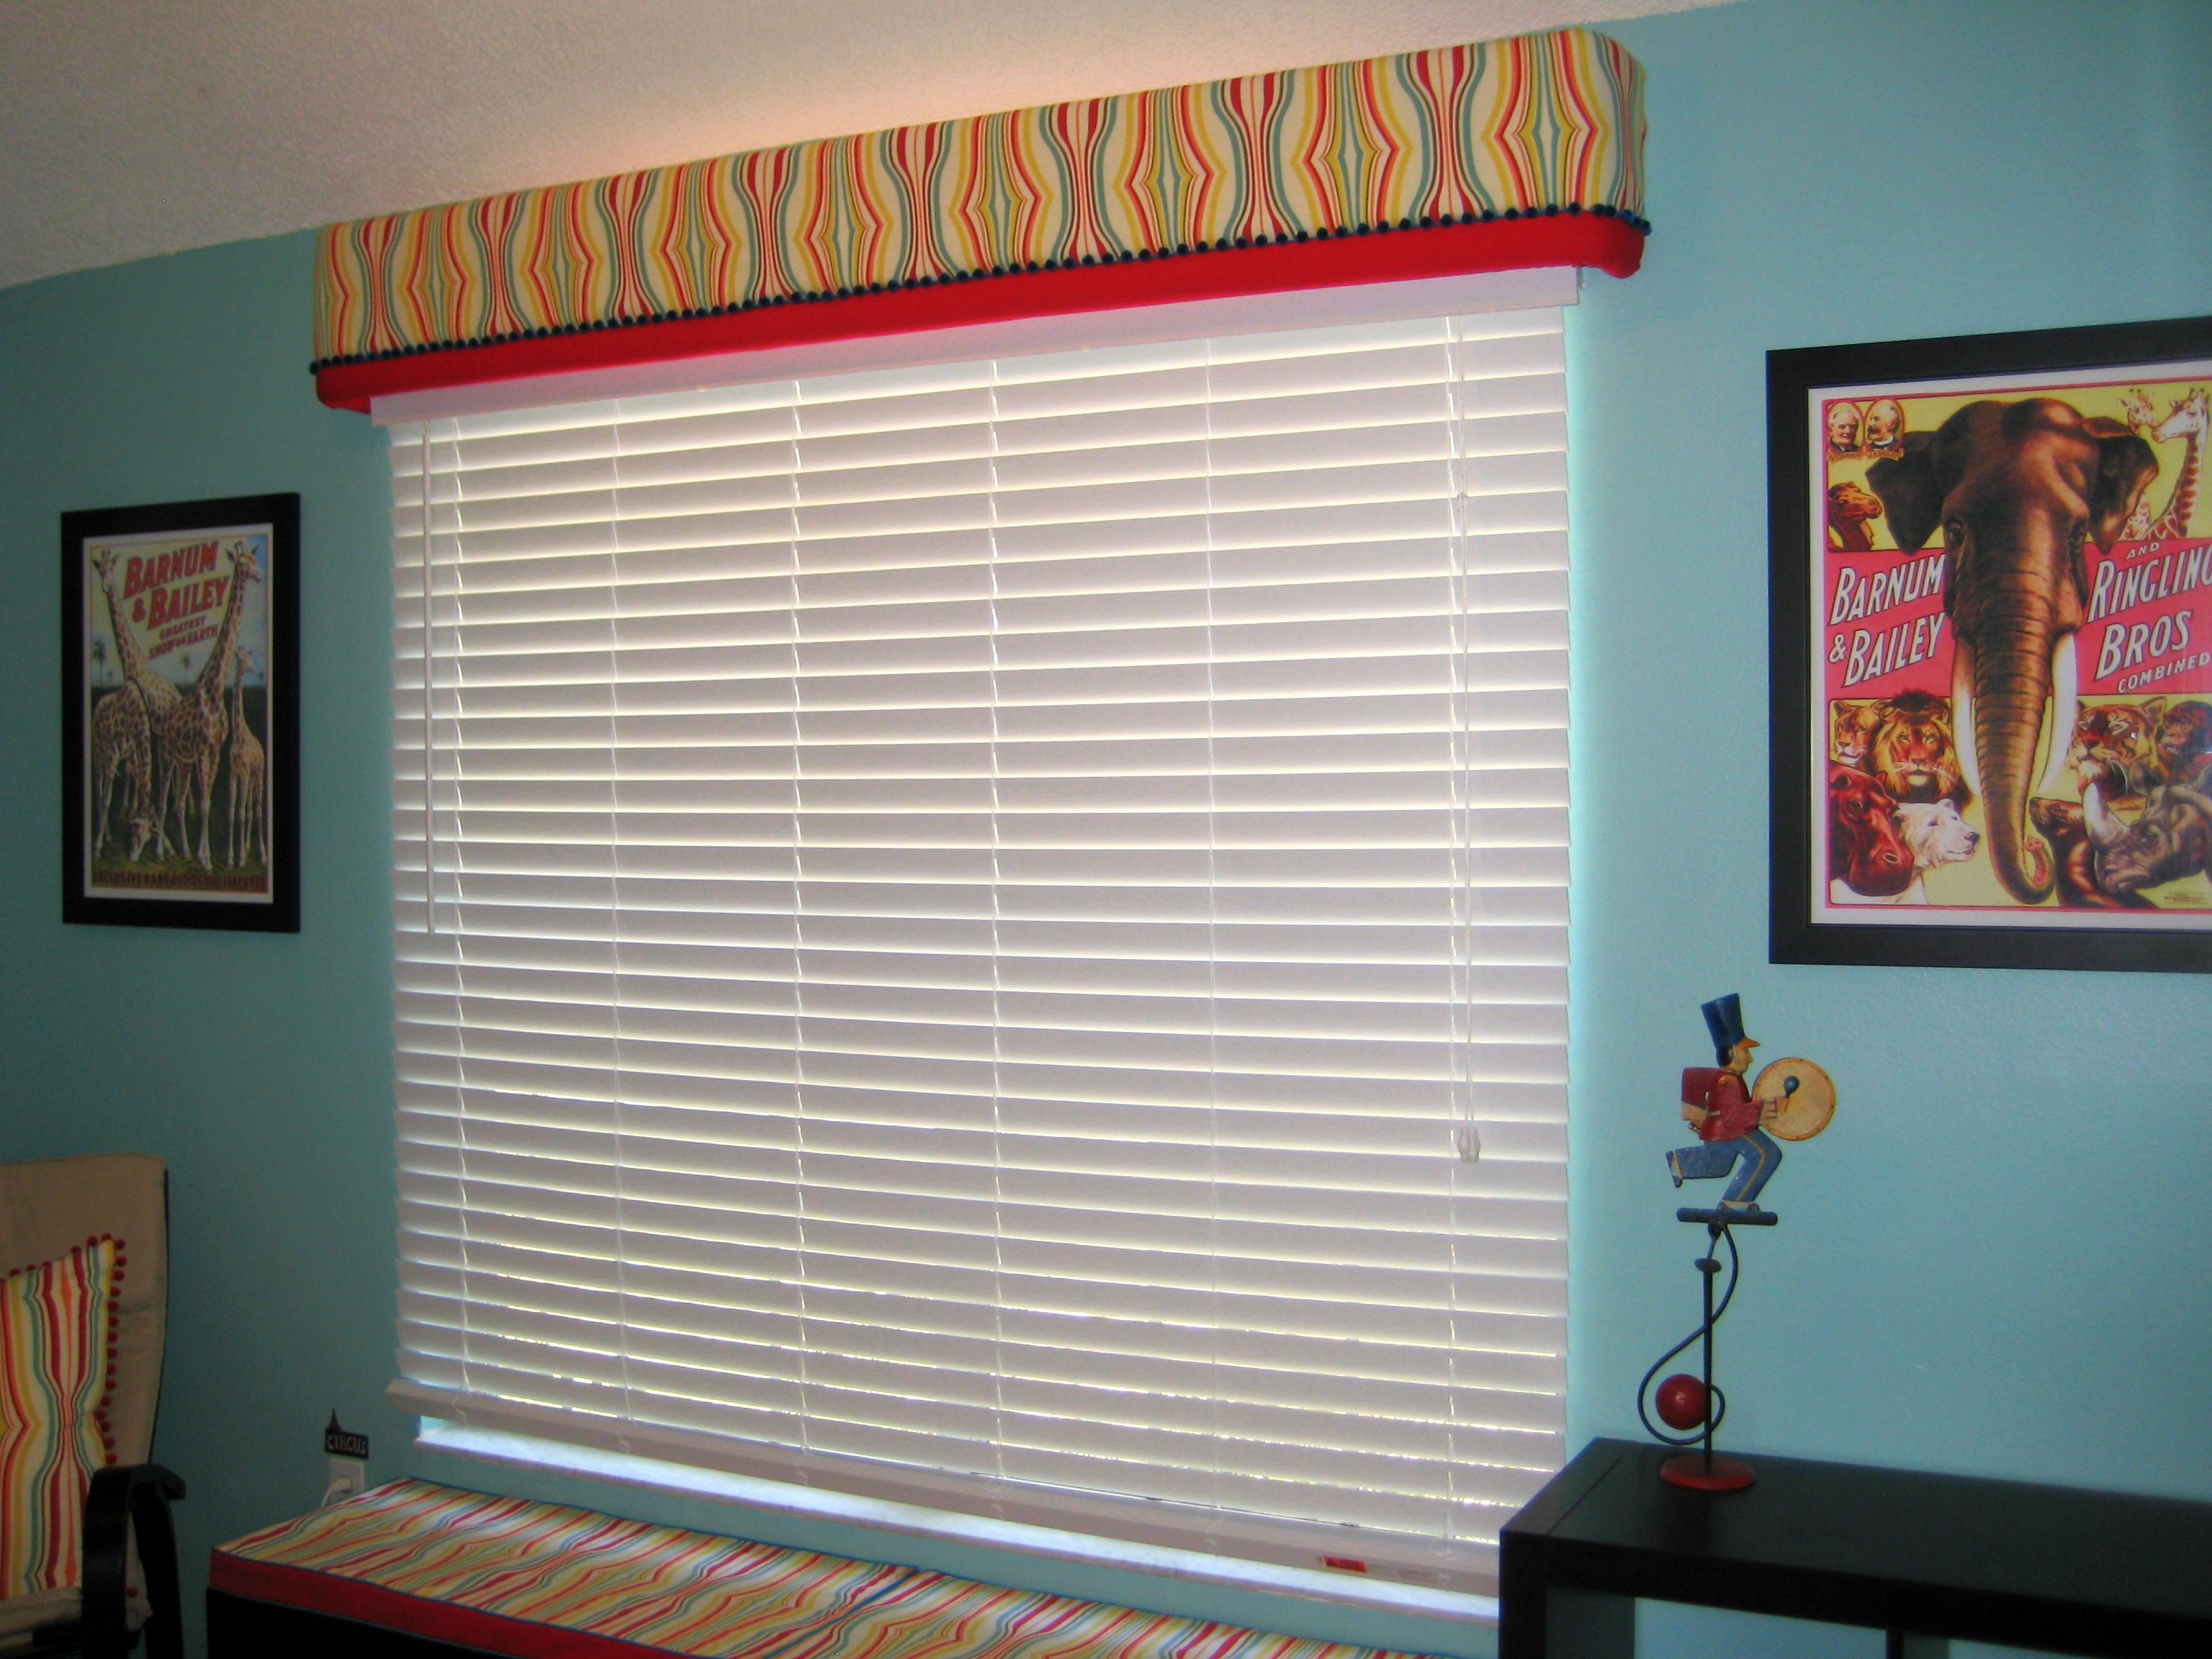 Fabric cornice over vertical blinds eshutterguy